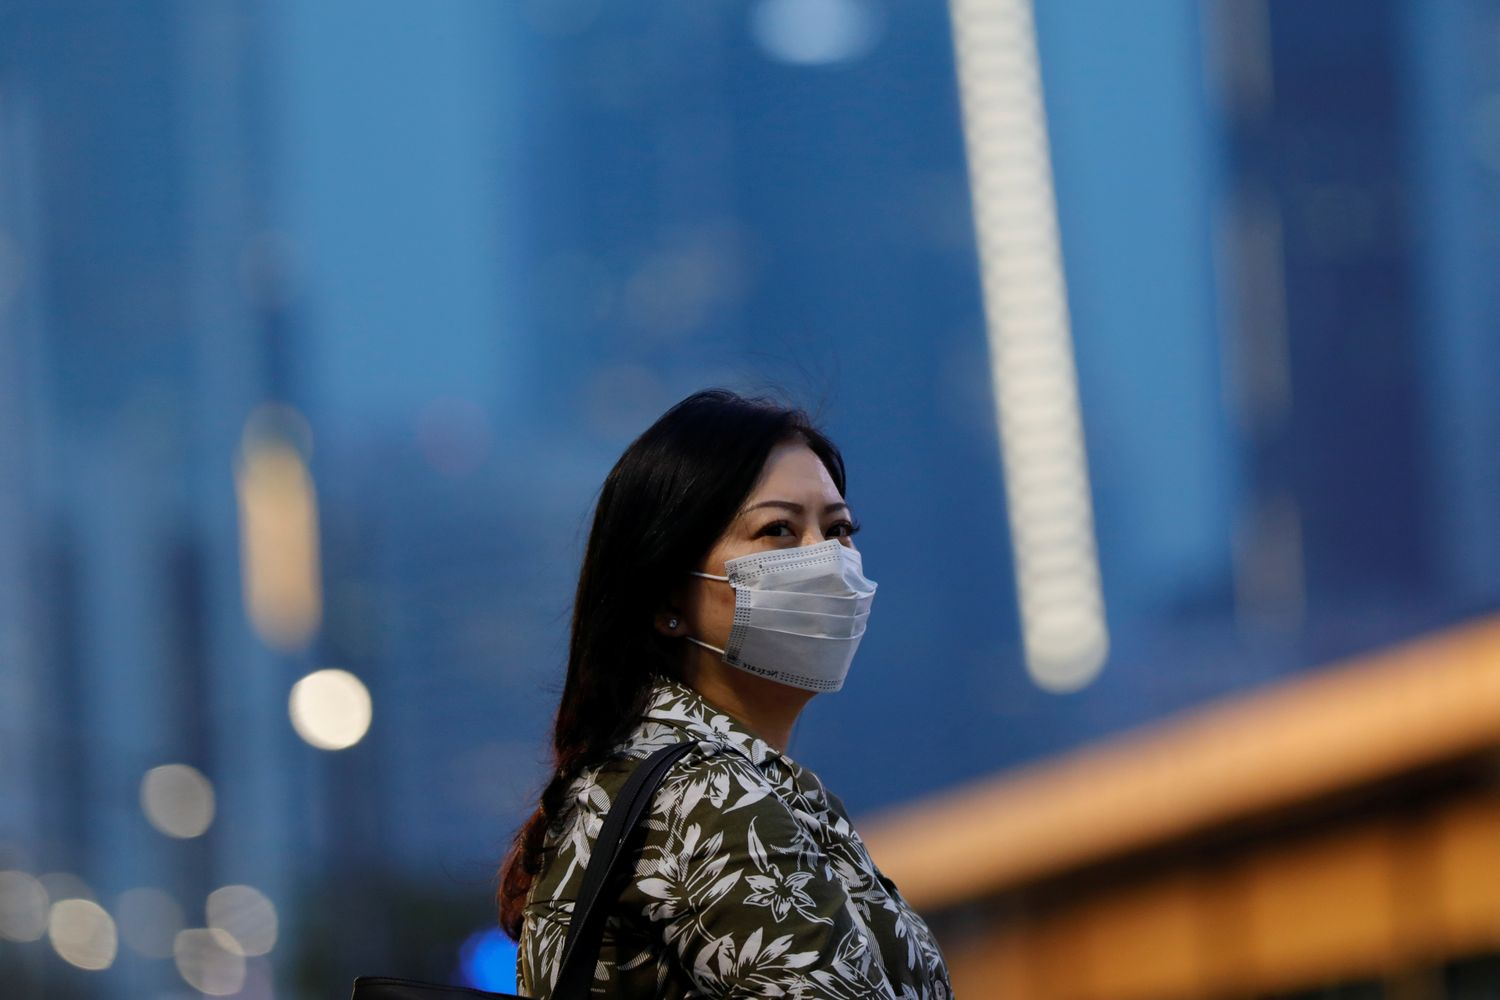 A woman wearing a protective face mask stands on the sidewalk amid the spread of coronavirus disease in Jakarta on Thursday. (Reuters photo)